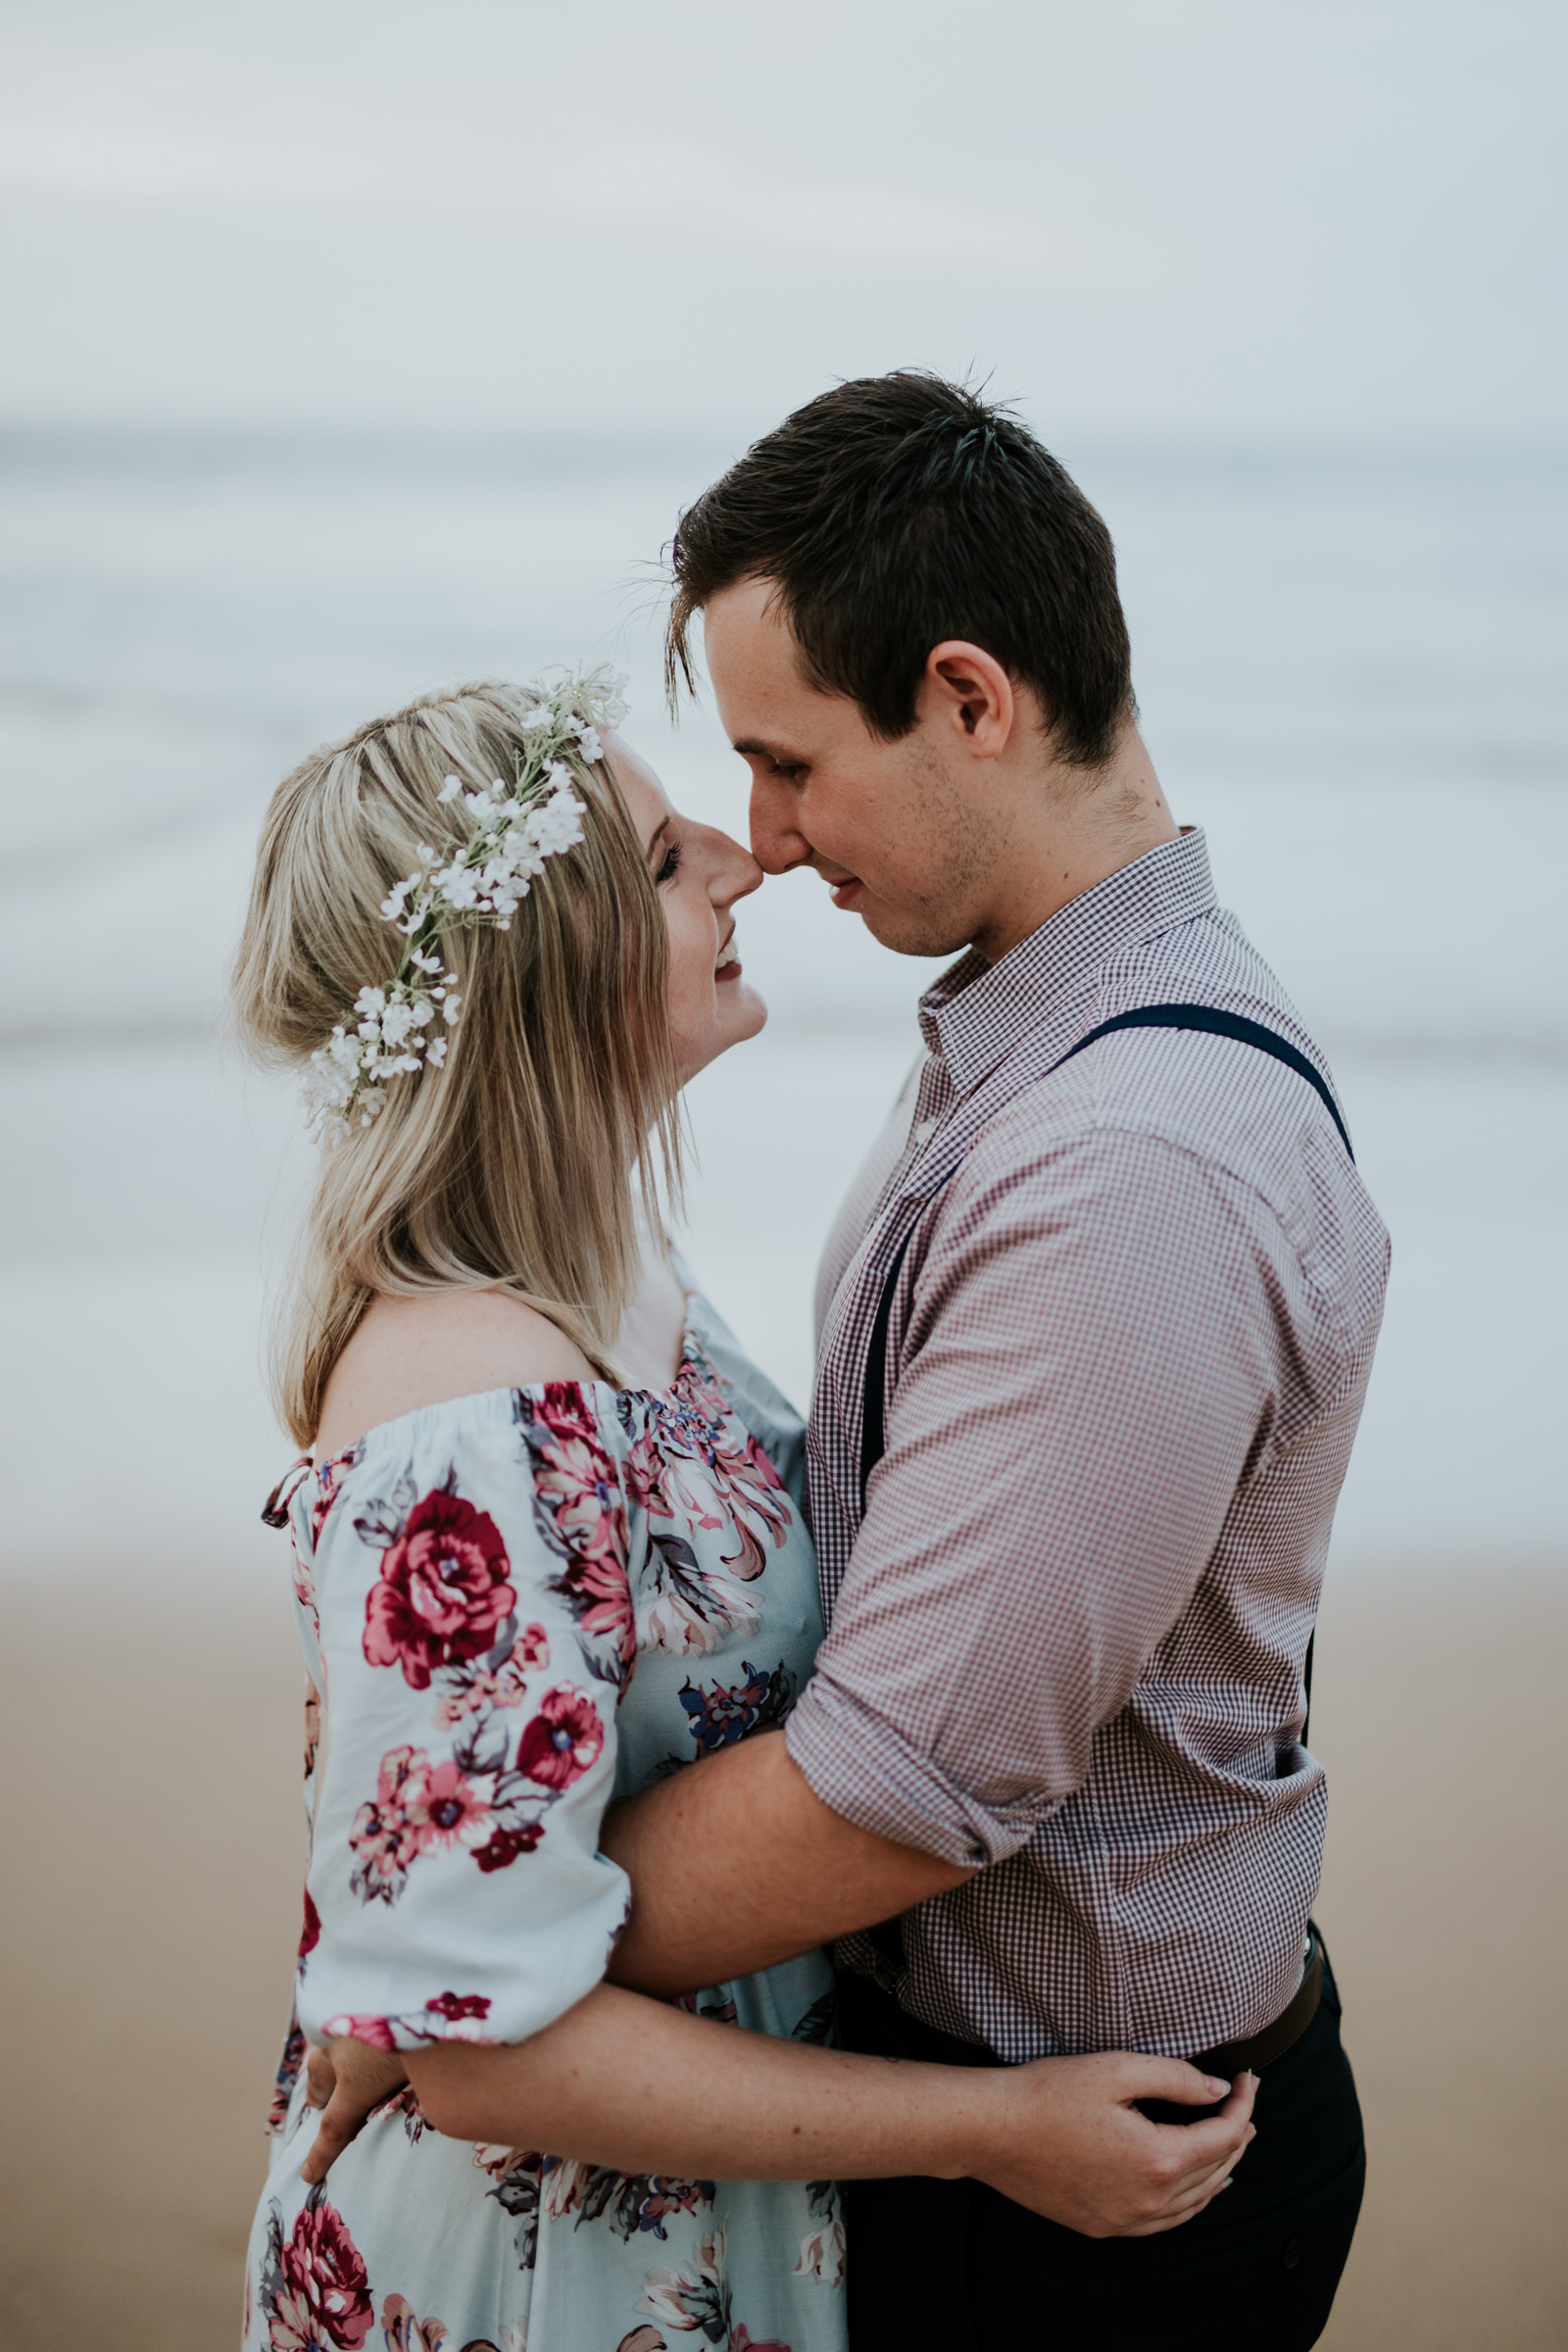 Ebony+Aj+Engagement+Kiama+Beach-6.jpg